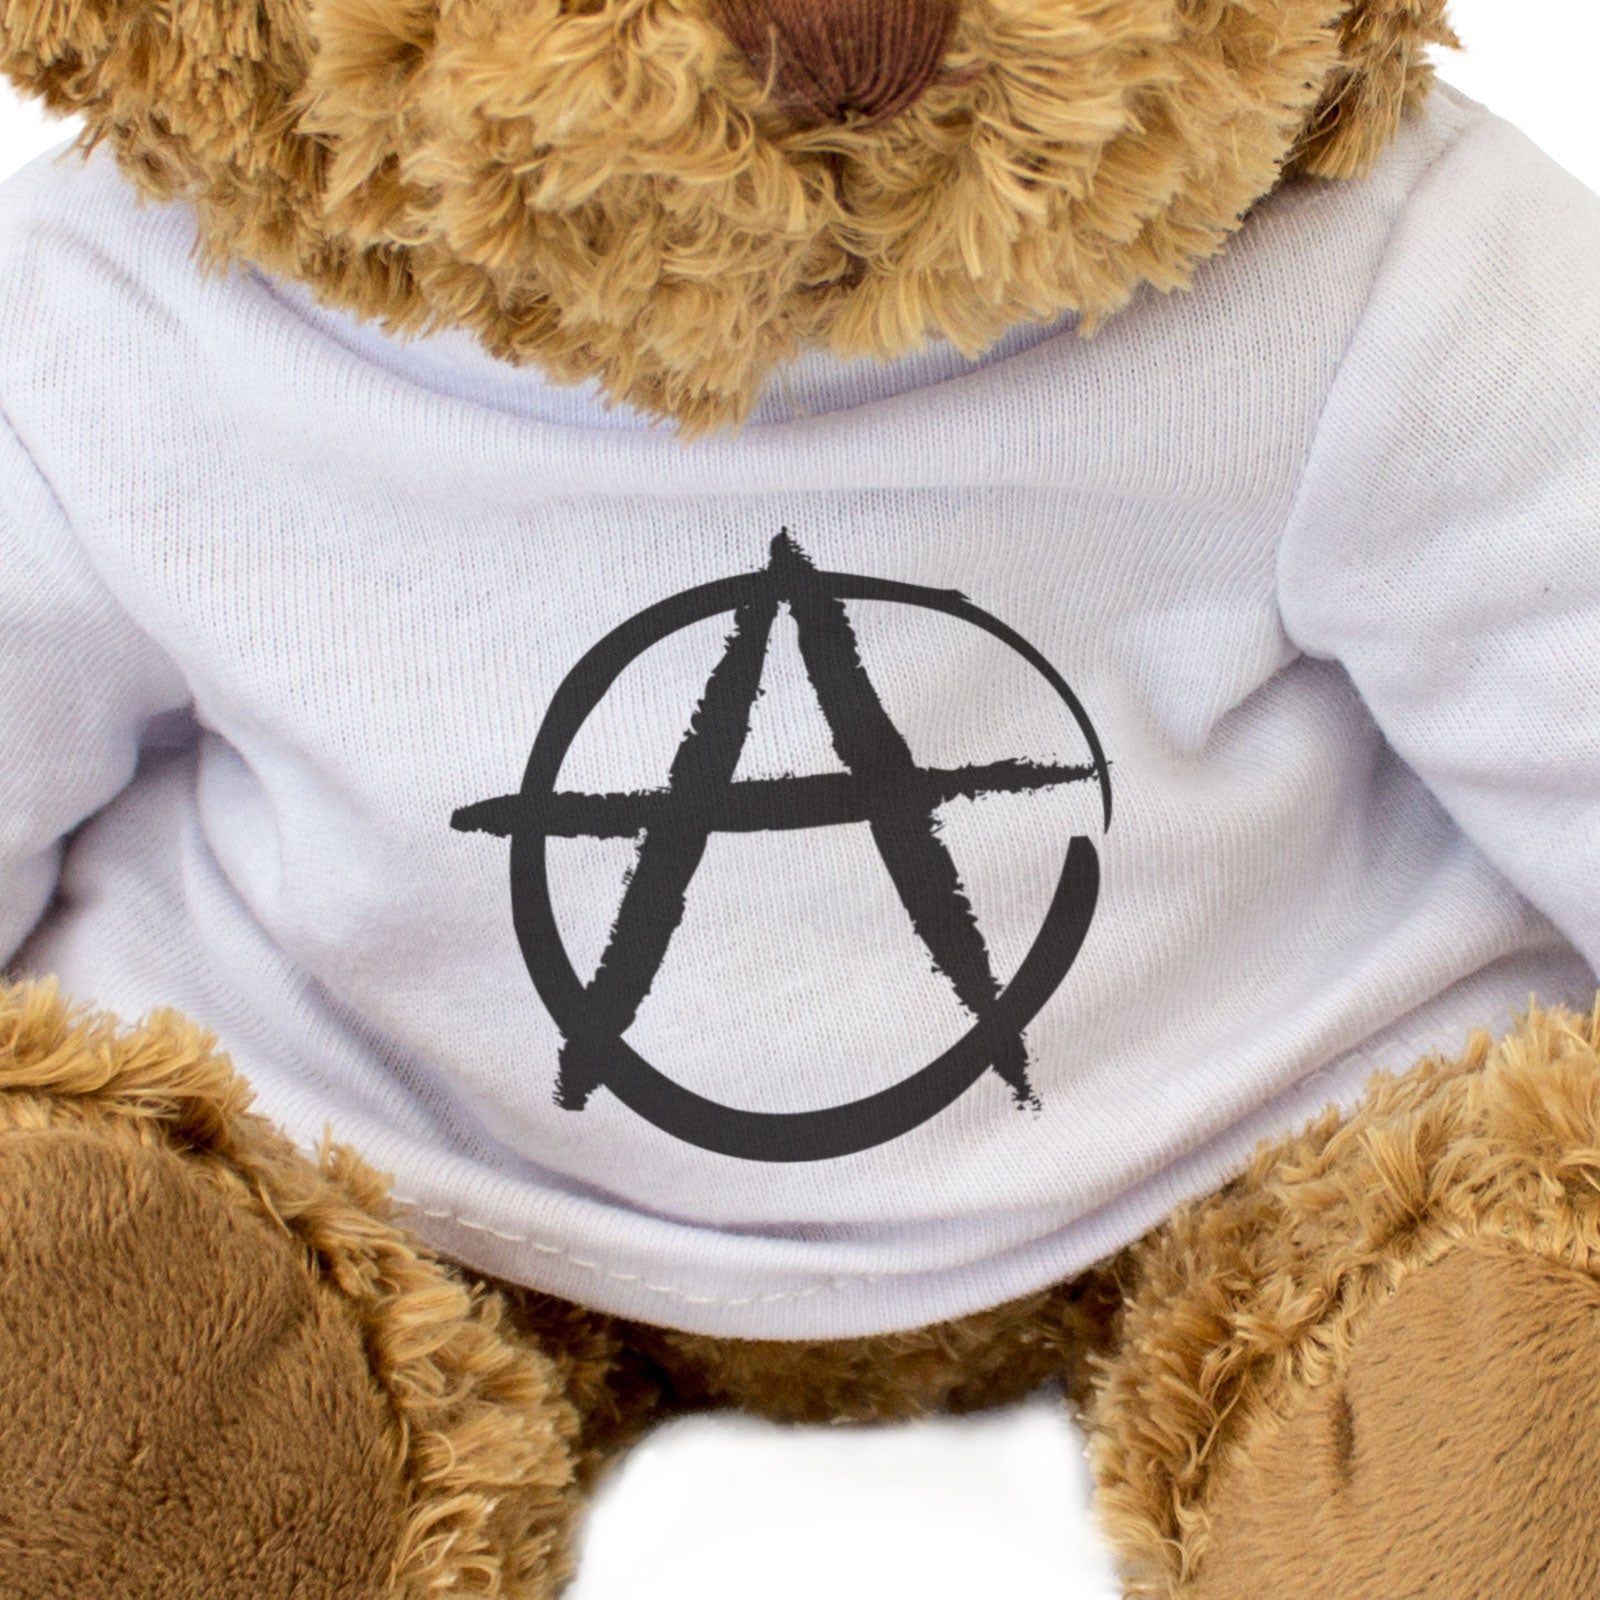 Anarchy Teddy Bear Christmas Birthday Gift